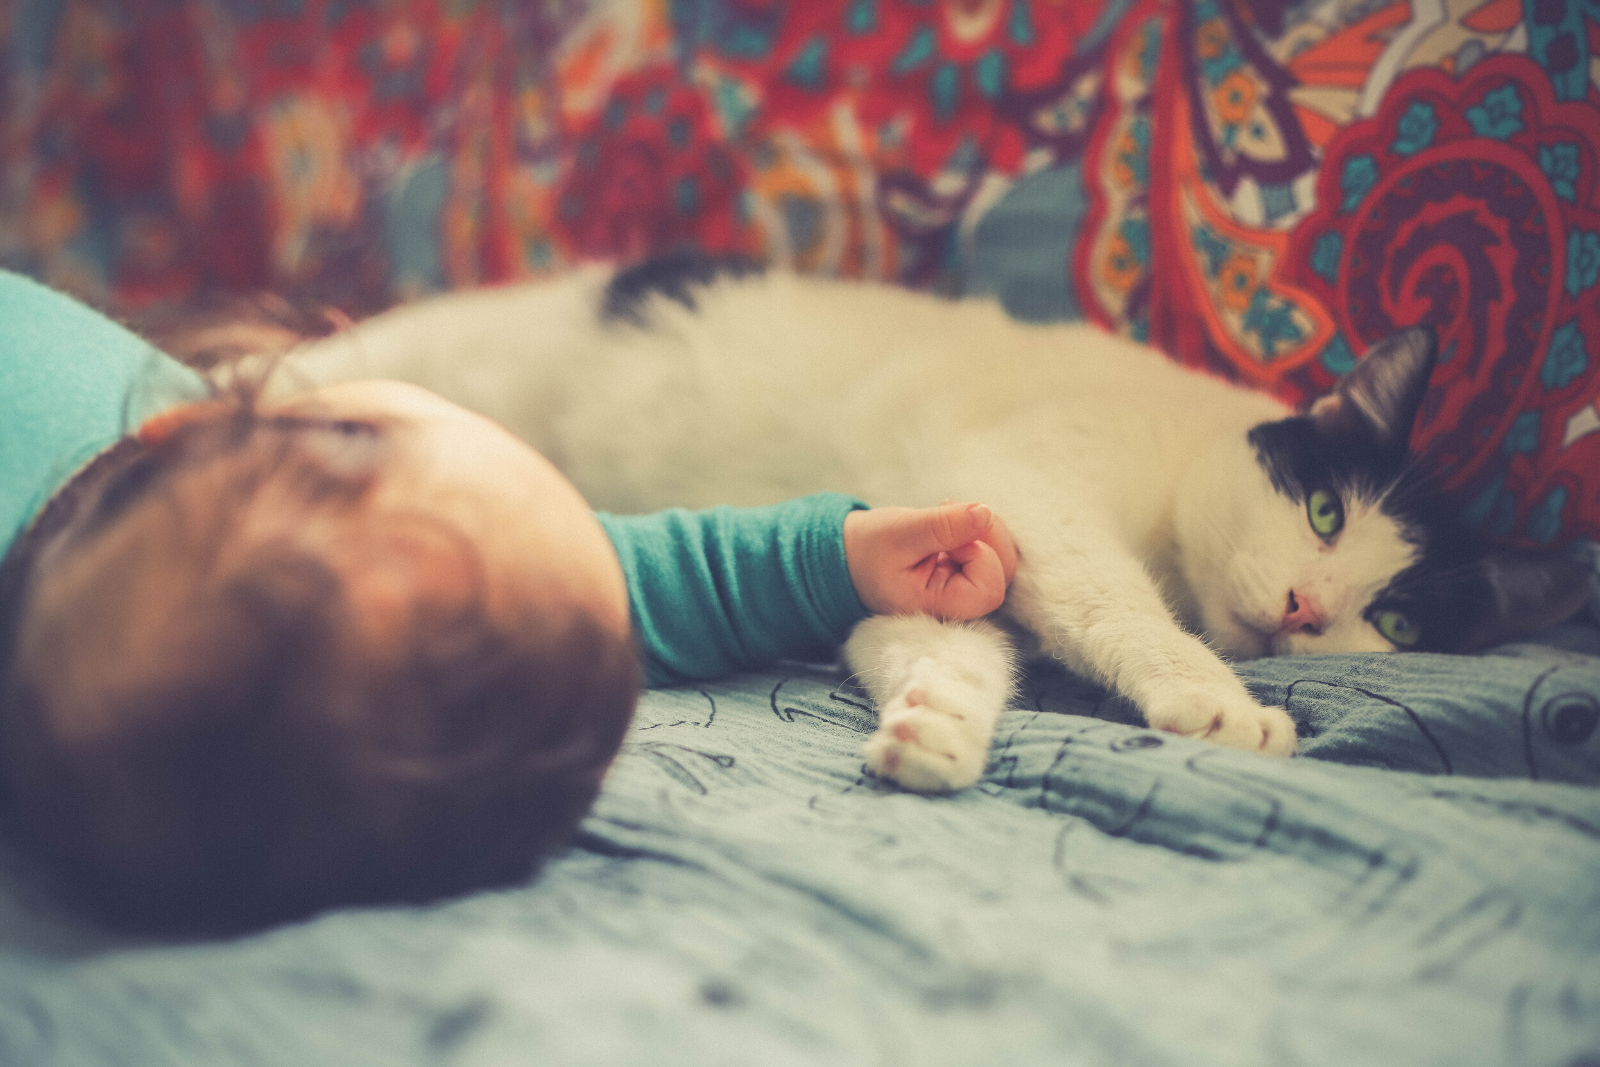 Baby and Cat | 8 Important Ways Of Preparing Pets For a Baby's Arrival